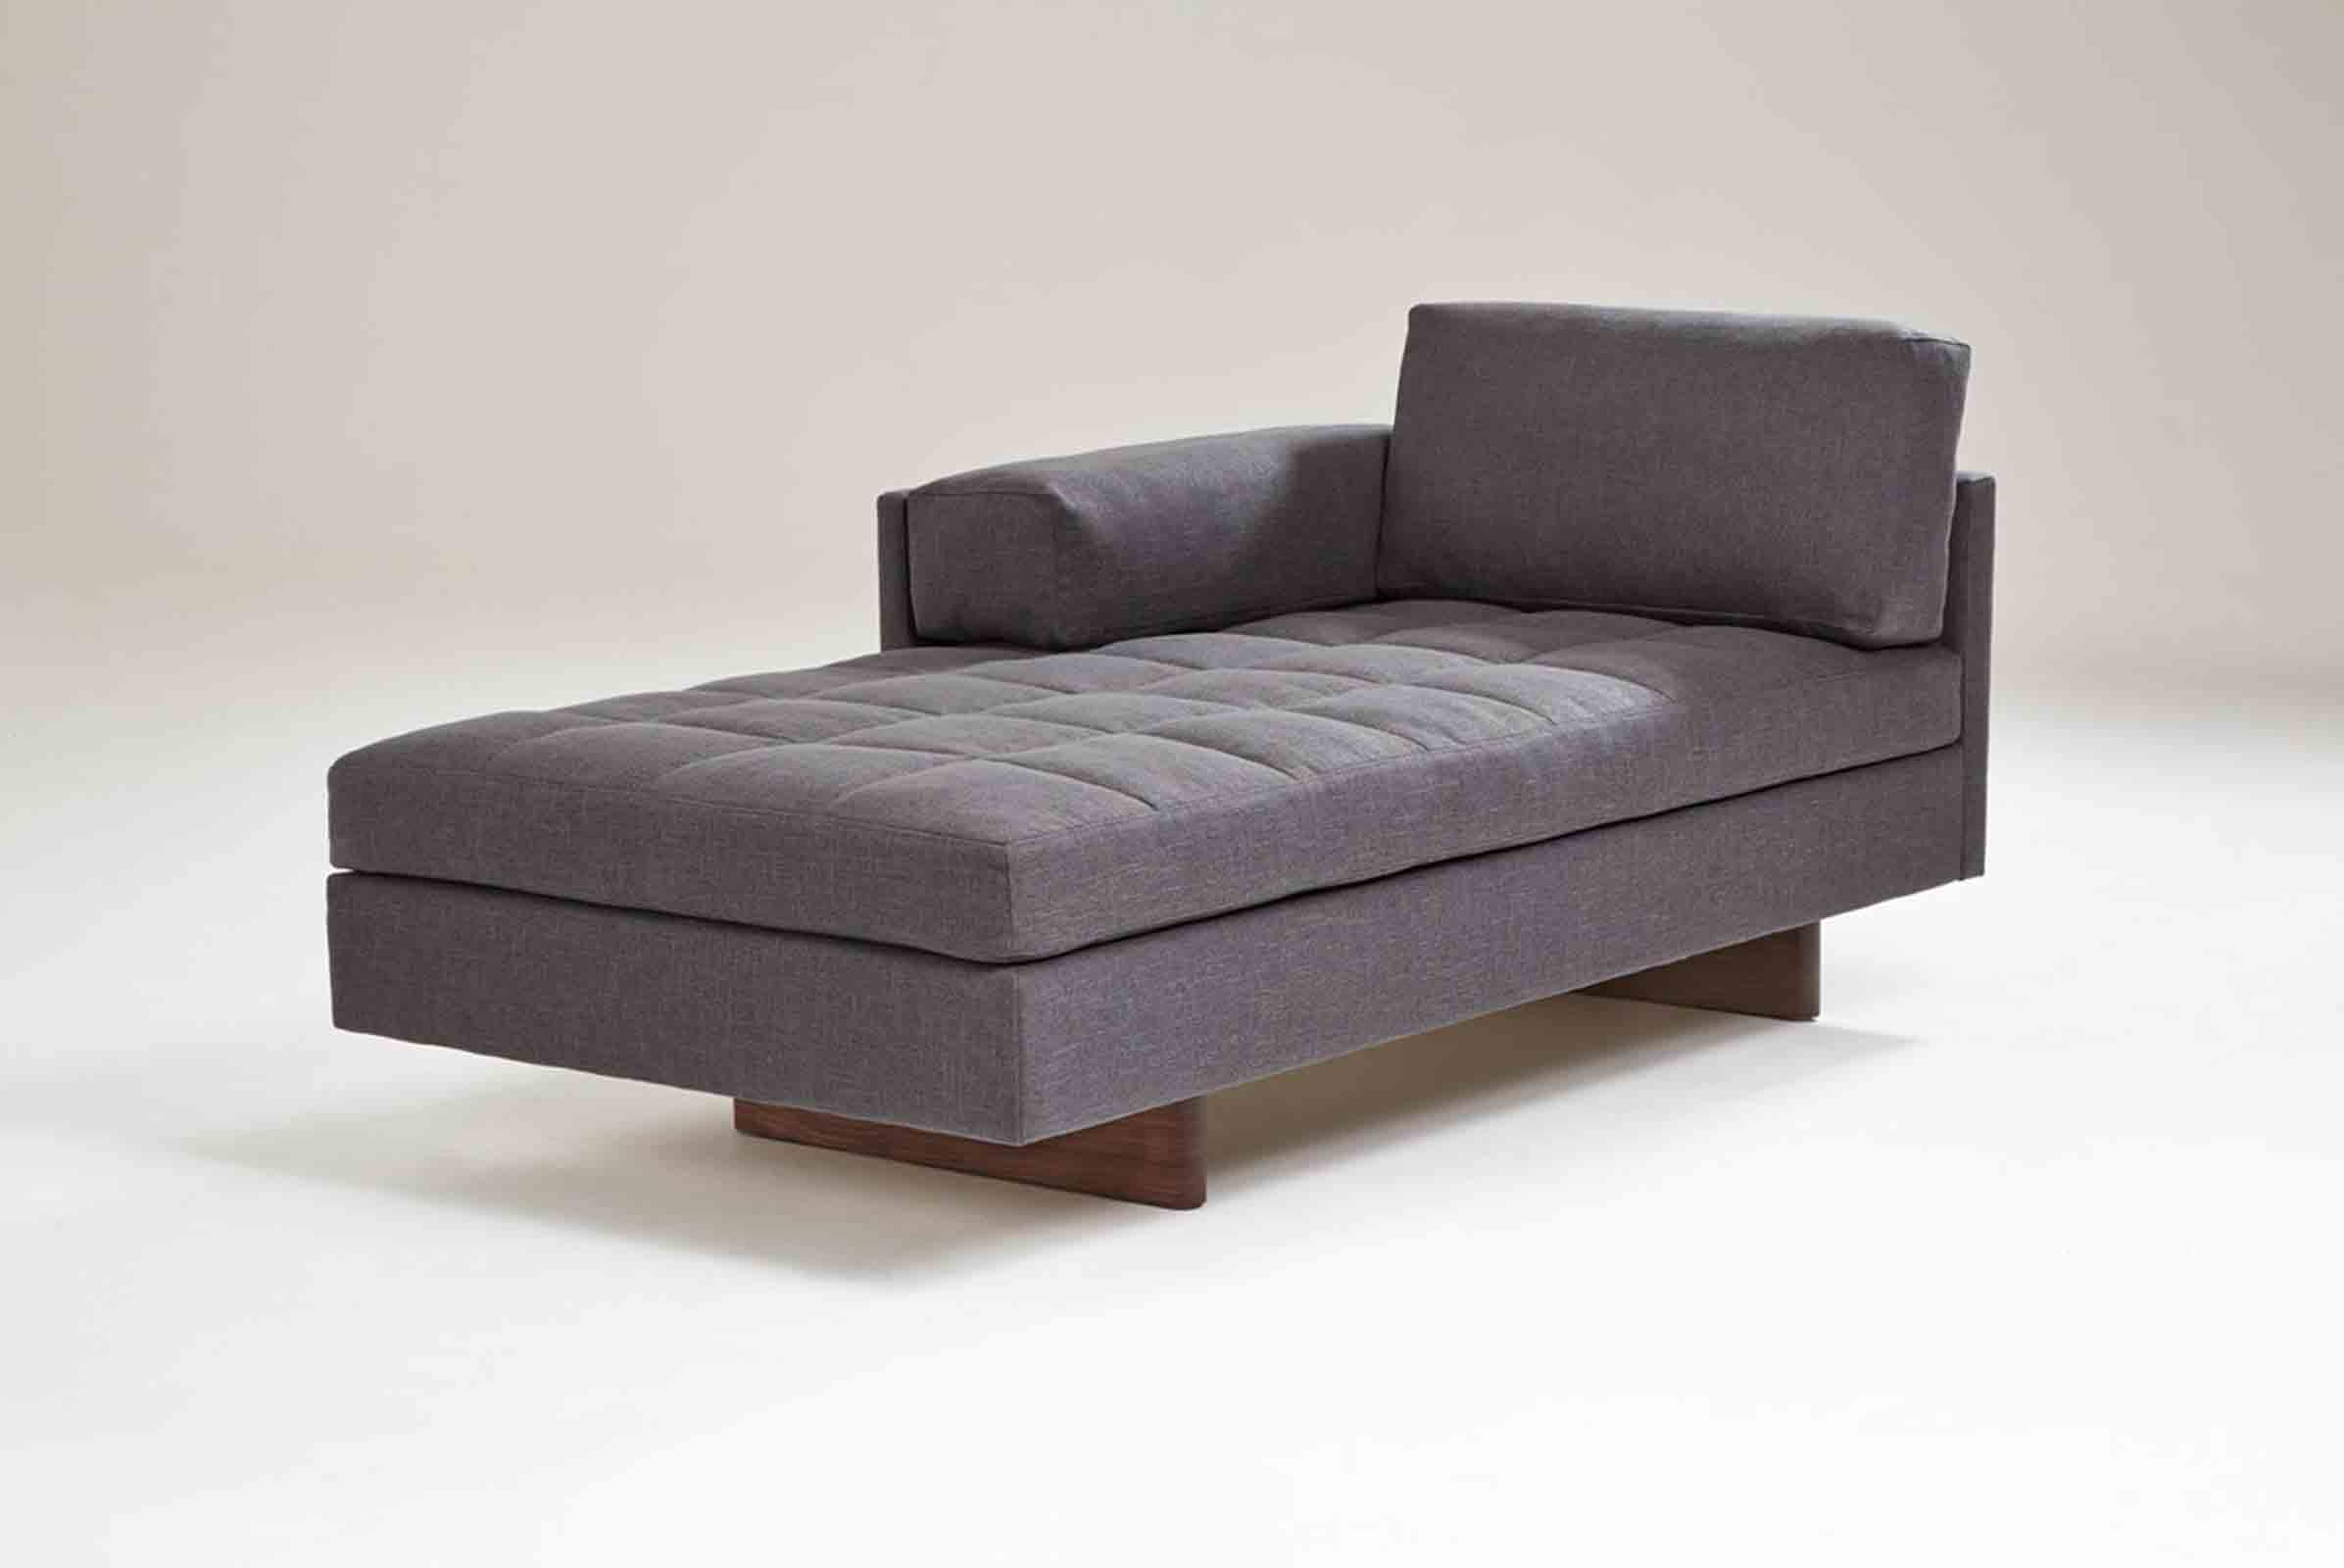 The 'Assymetric chaise' from BassamFellows